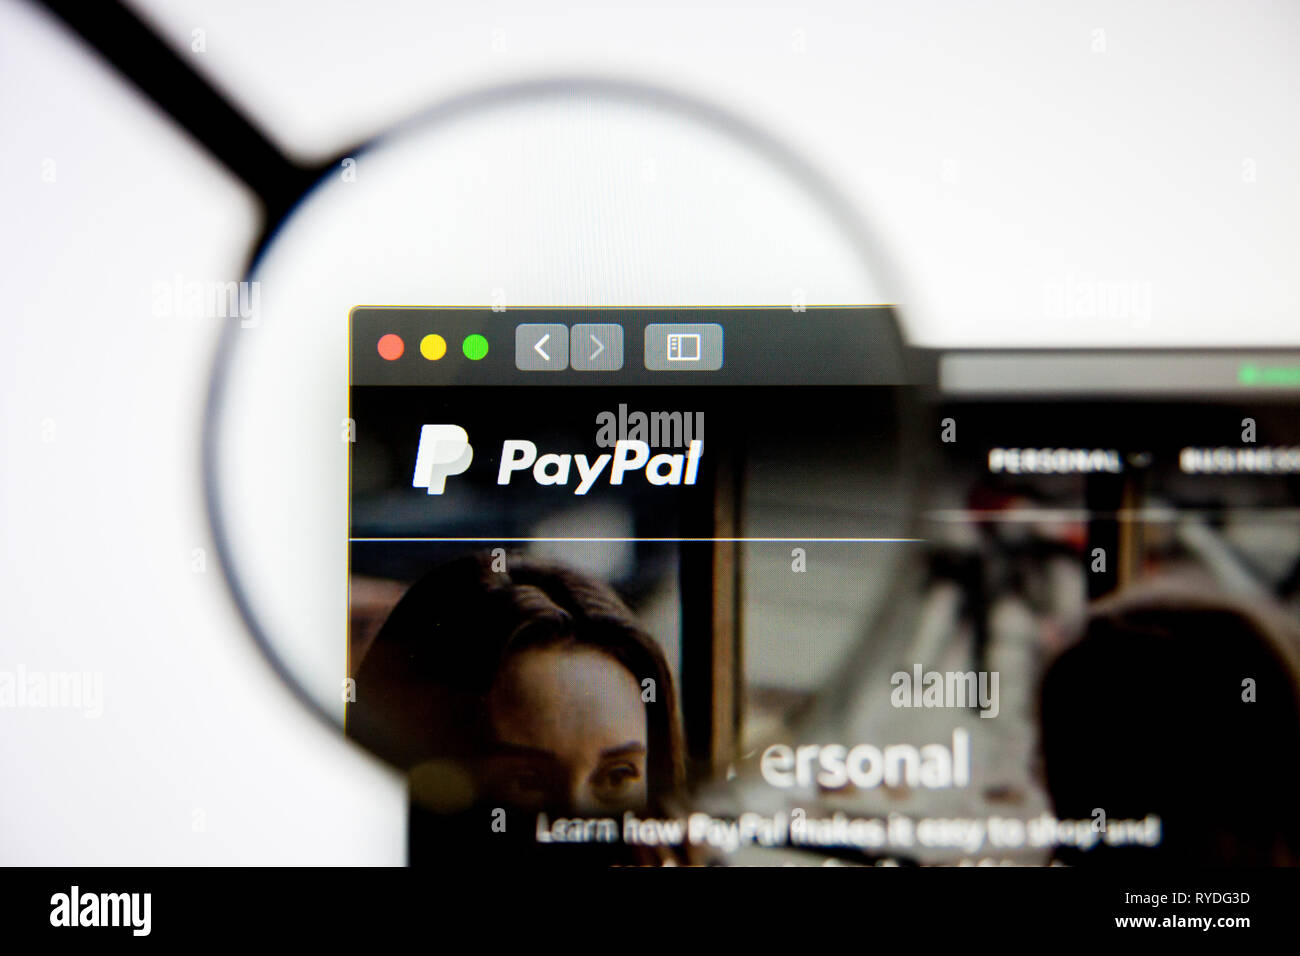 Los Angeles, California, USA - 5 March 2019: PayPal website homepage. PayPal logo visible on display screen, Illustrative Editorial - Stock Image